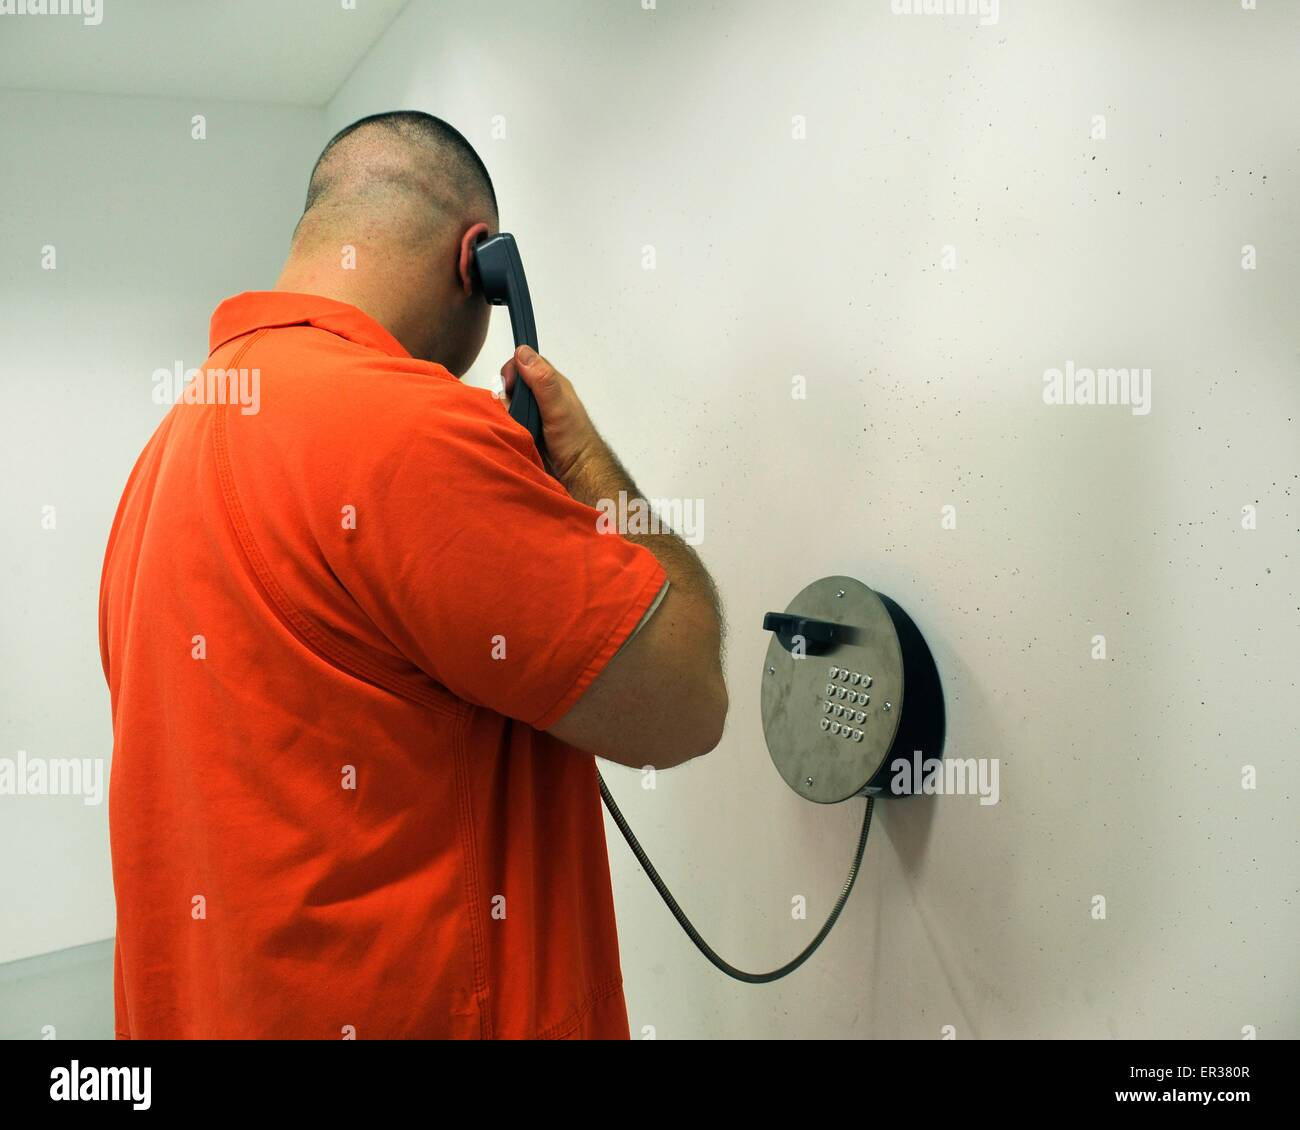 A prisoner in orange jump suit makes a phone call from inside the U.S. Army Regional Correctional Facility located - Stock Image